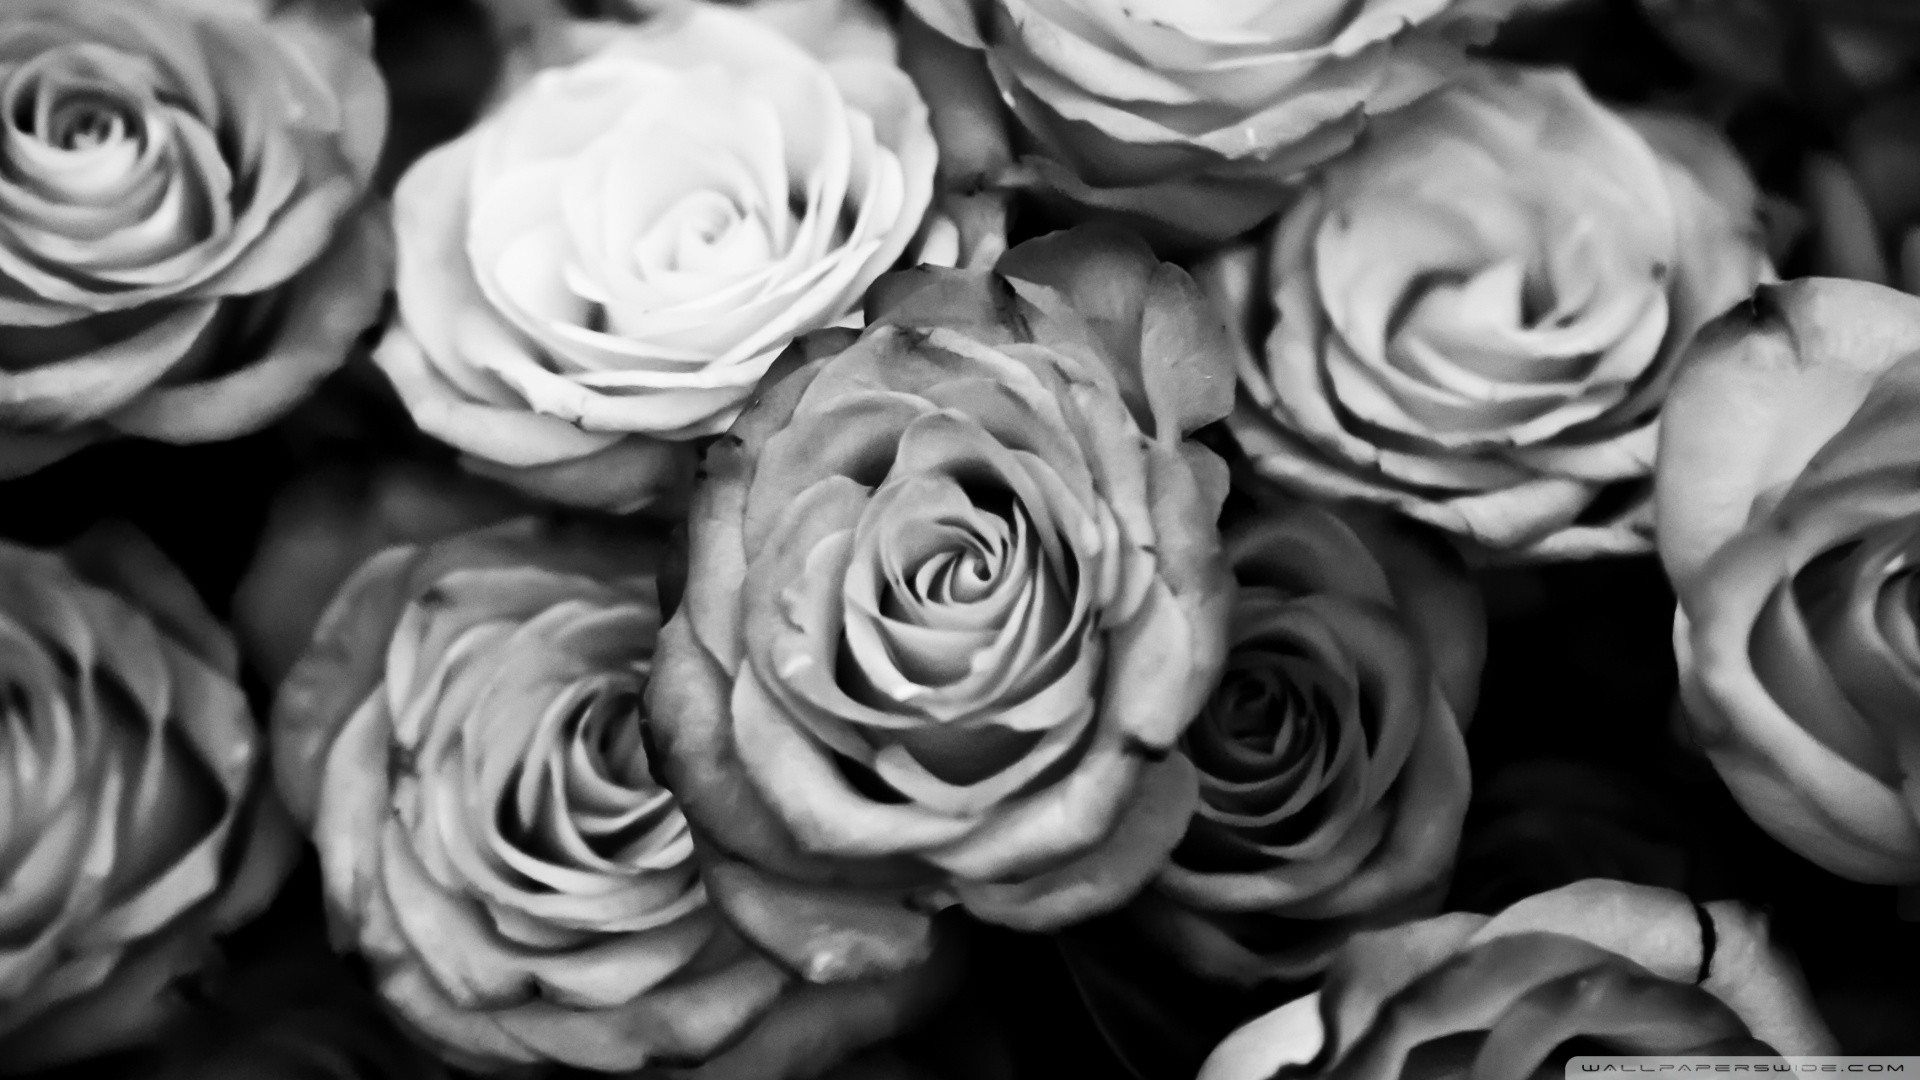 You can download Black And White Roses in your computer by clicking .